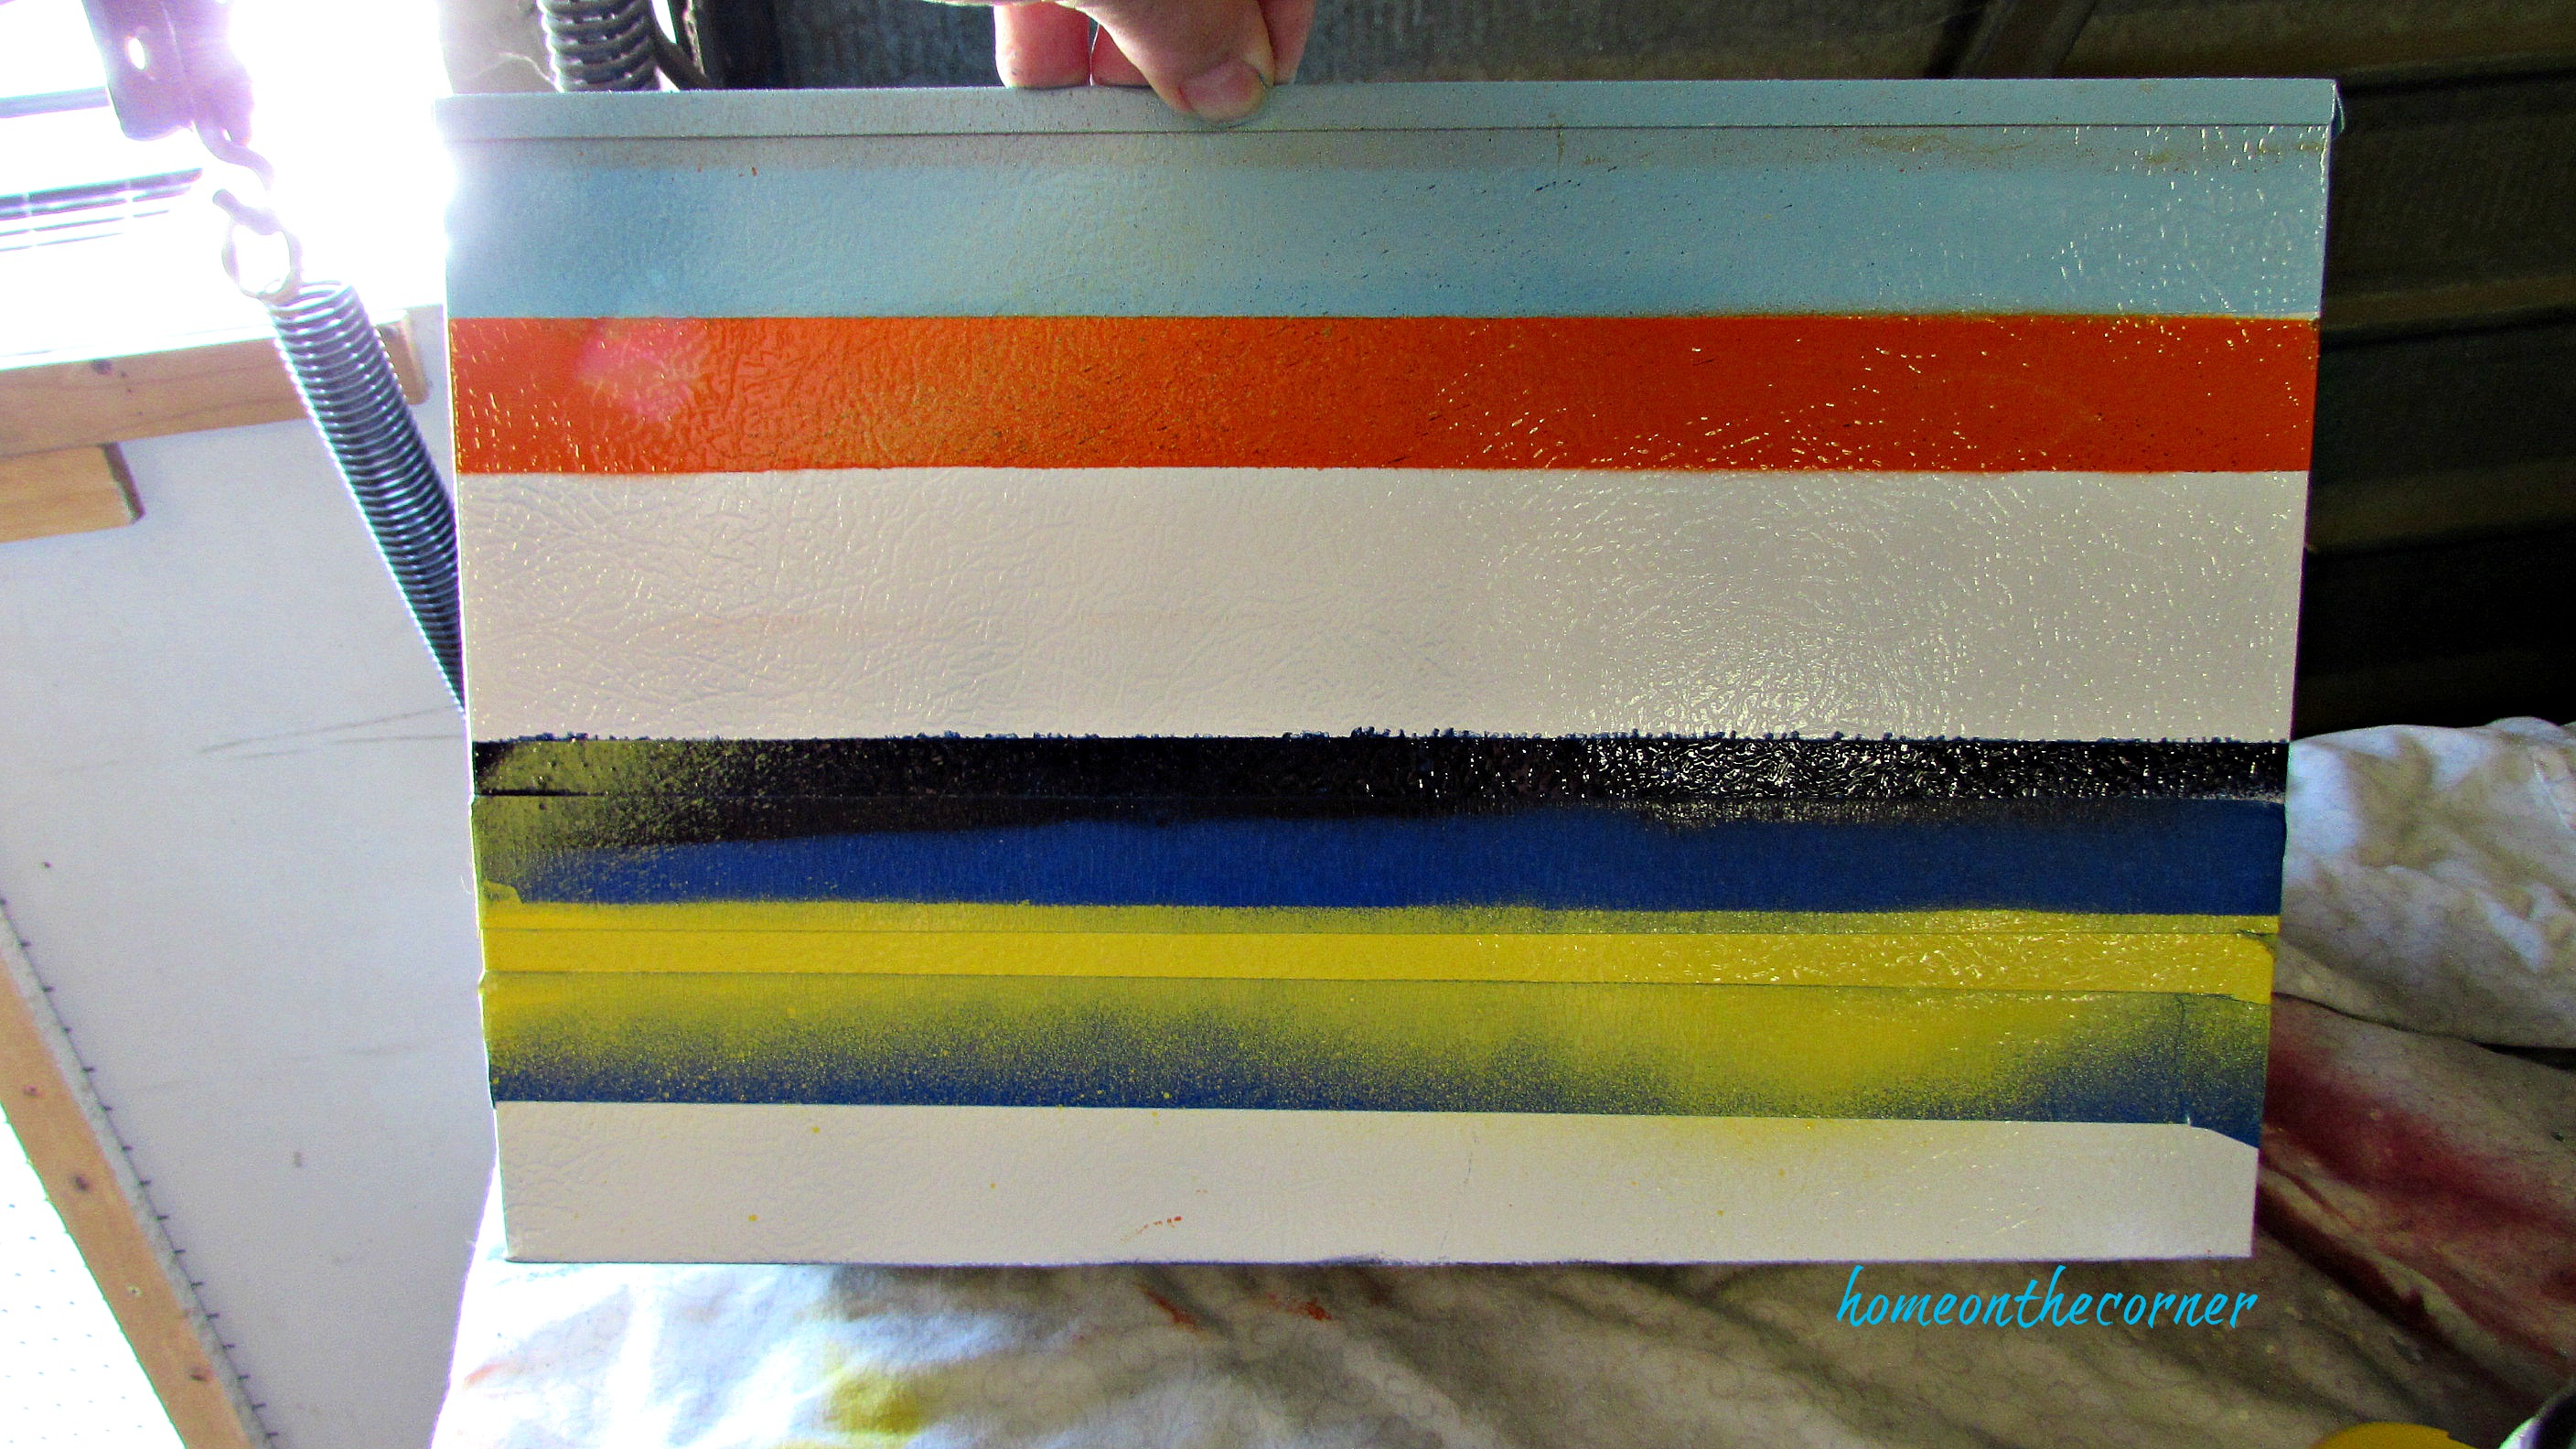 metal box spray paint stripes orange, turquoise